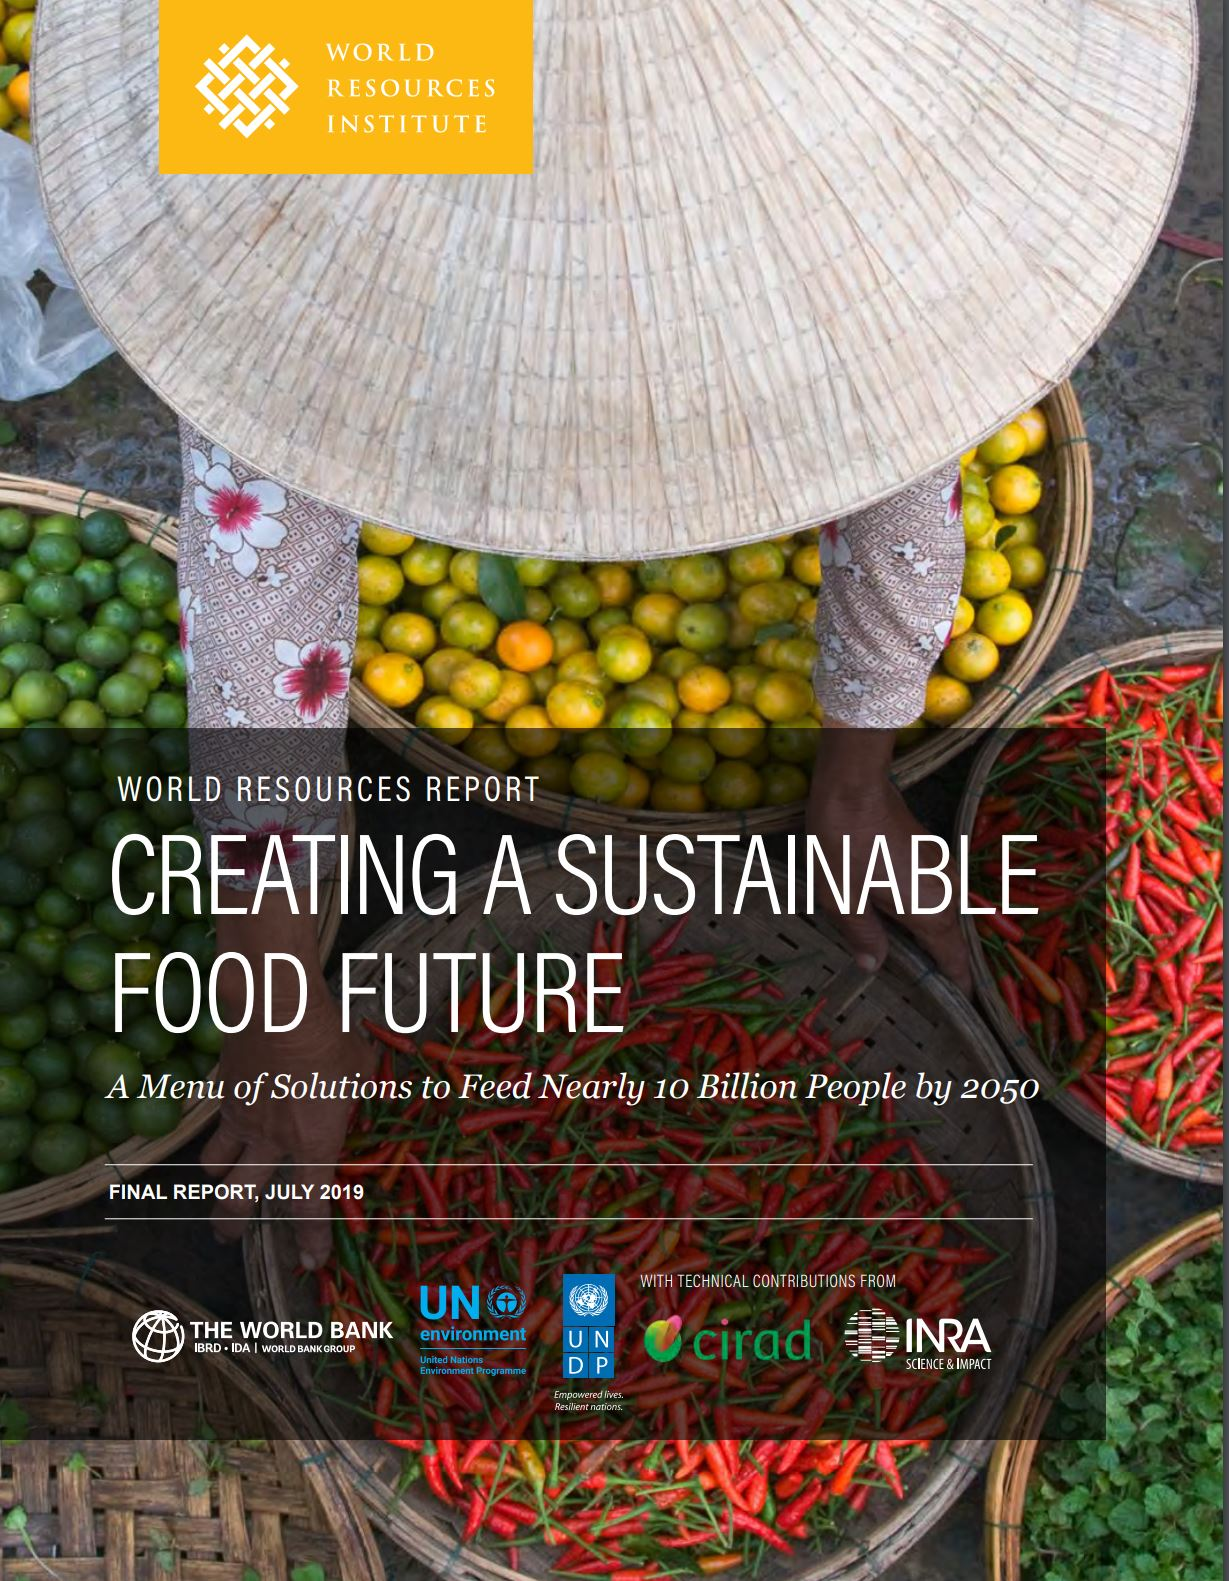 World Resources Institute Report Cover - Creating a sustainable food future